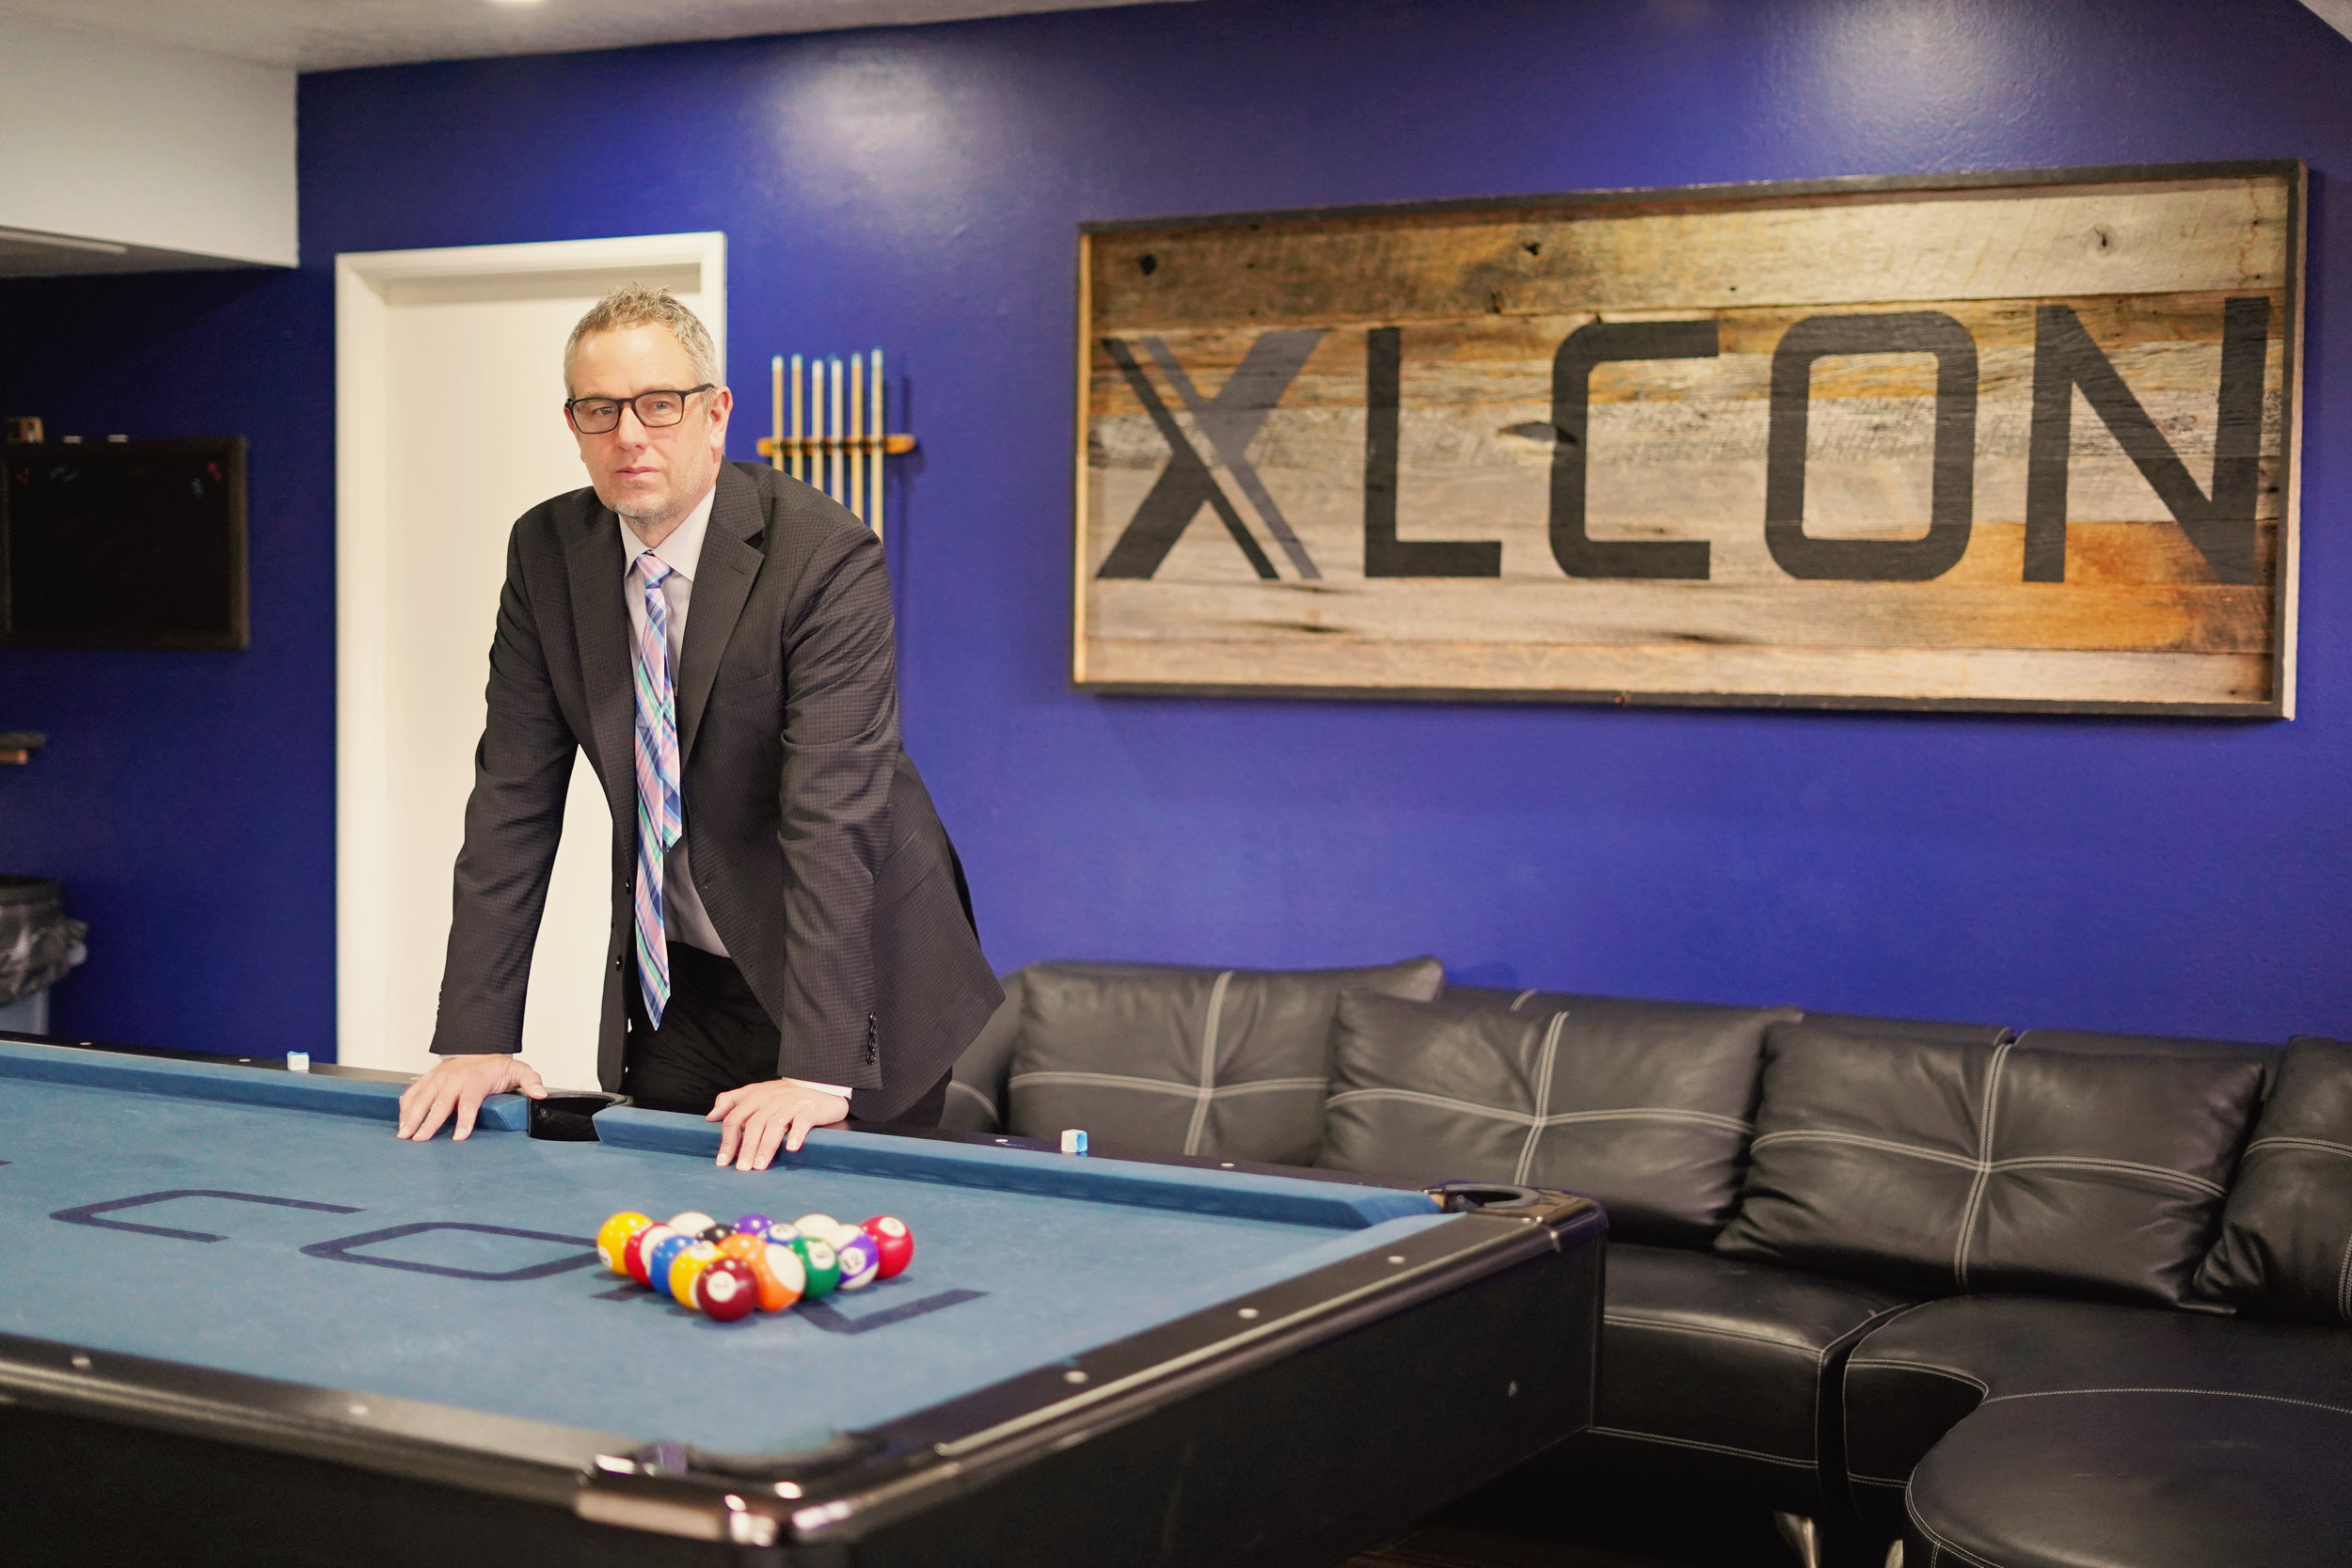 """XLCON - is a premier IT service company. Our core competency is the partnership we build with our clients in order to be the IT extension for their organization."" - TRAVIS LASS"